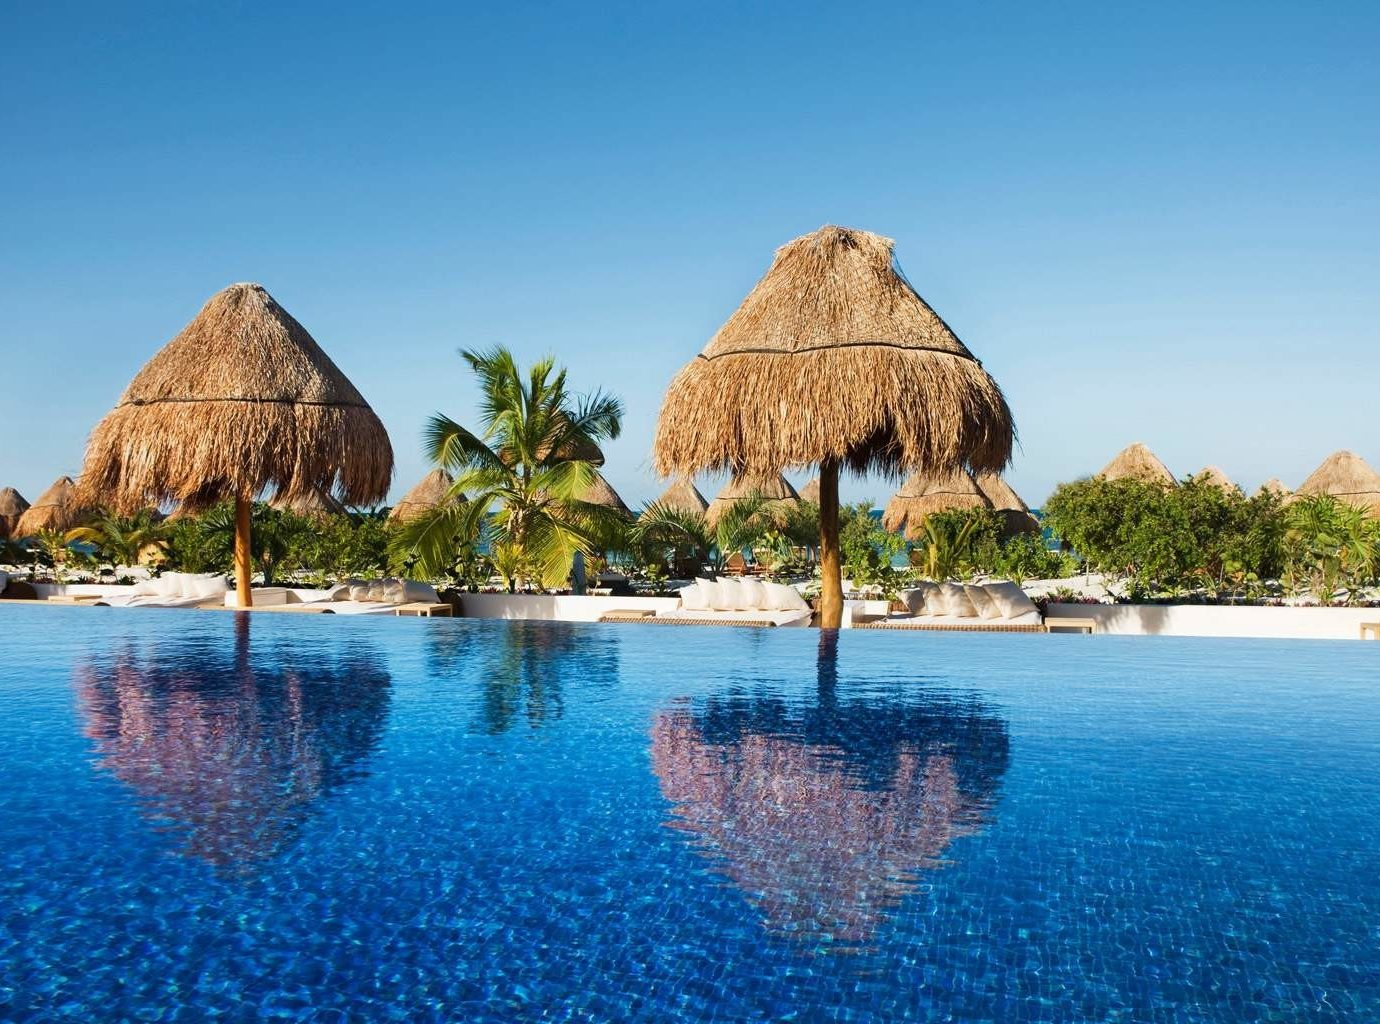 Hotels water outdoor sky Nature umbrella vacation lawn swimming pool Resort swimming Sea shore Lake Lagoon estate bay Beach Pool day empty surrounded Island